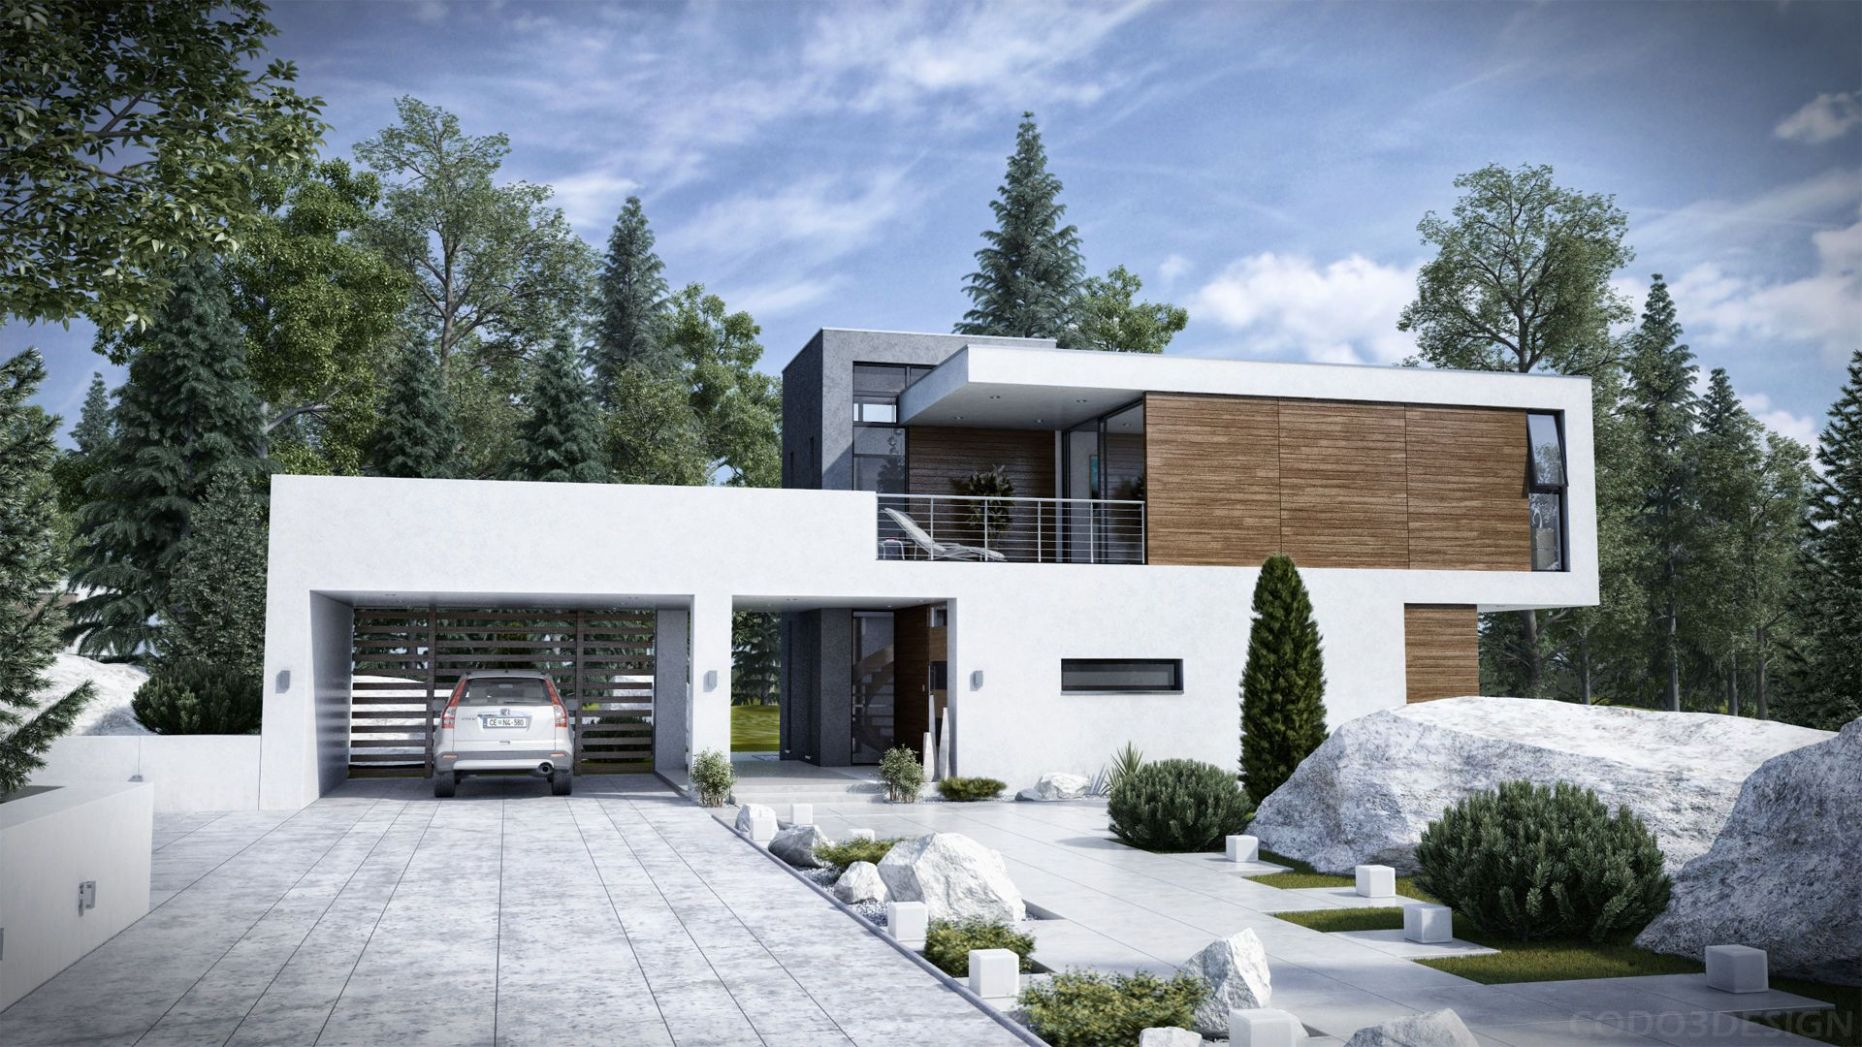 Architecture: Cool Large Modern Home With White Exterior And Eco ..